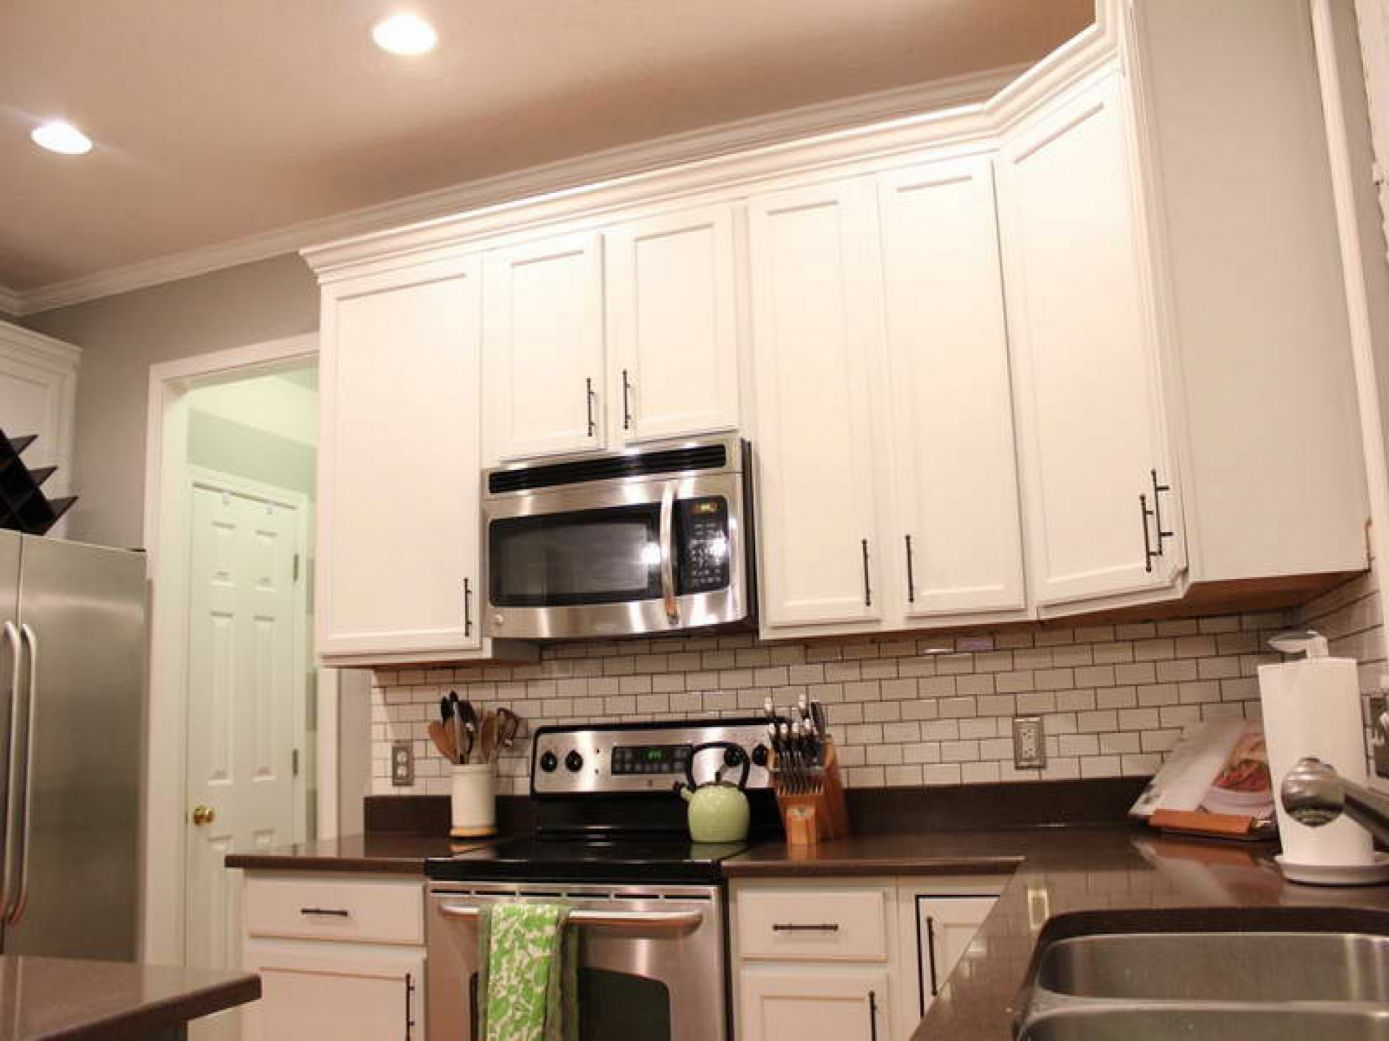 99 Modern Hardware For Kitchen Cabinets Top Rated Interior Paint Check More At Http Kitchen Cabinet Styles Kitchen Cabinet Design Kitchen Cabinet Hardware